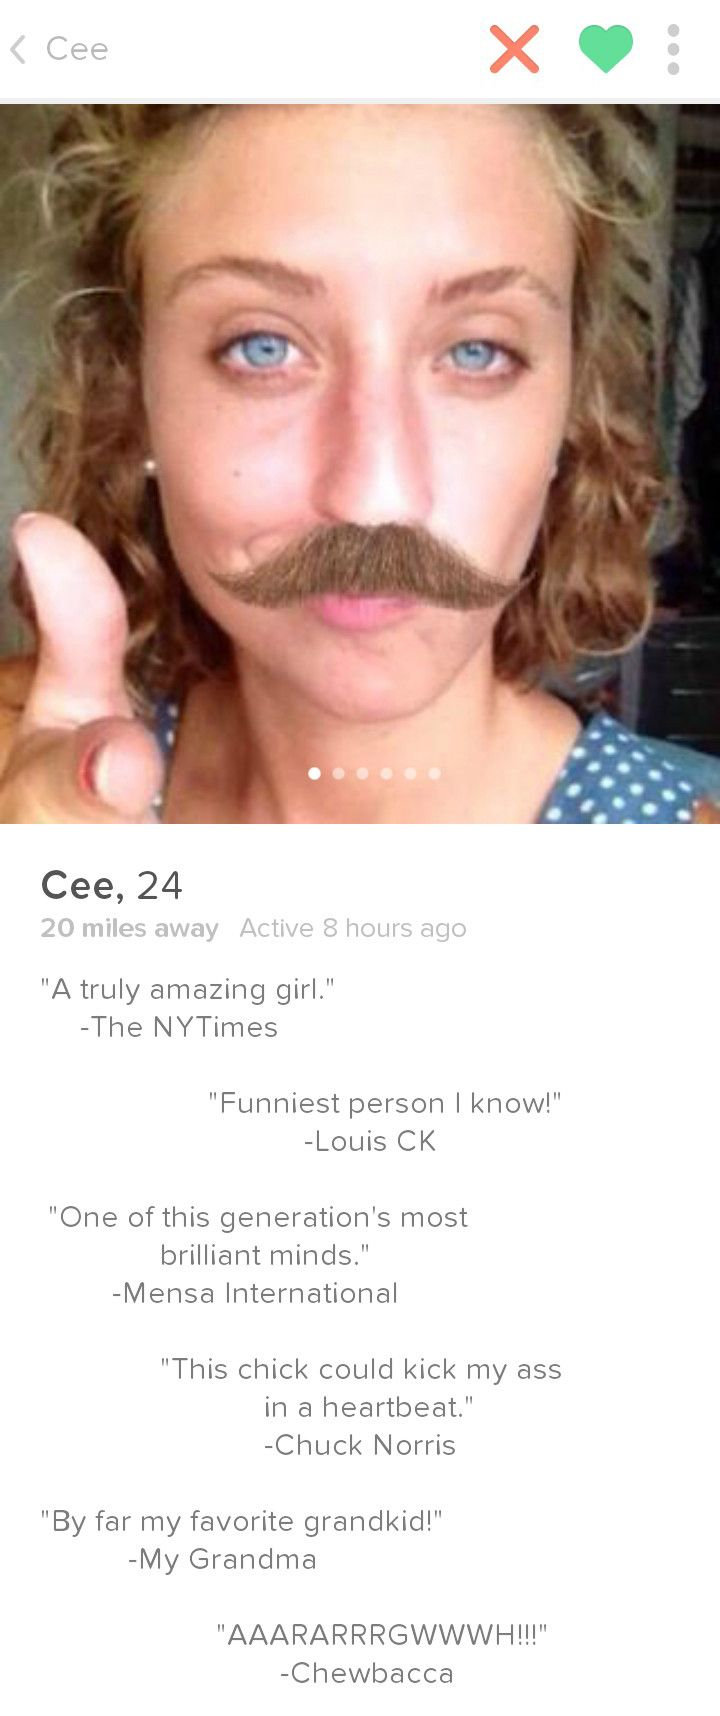 Let S Face It Dating Is Literally The Worst These Profiles Make It Slightly More Amusing Funny Tinder Profiles Tinder Humor Tinder Profile